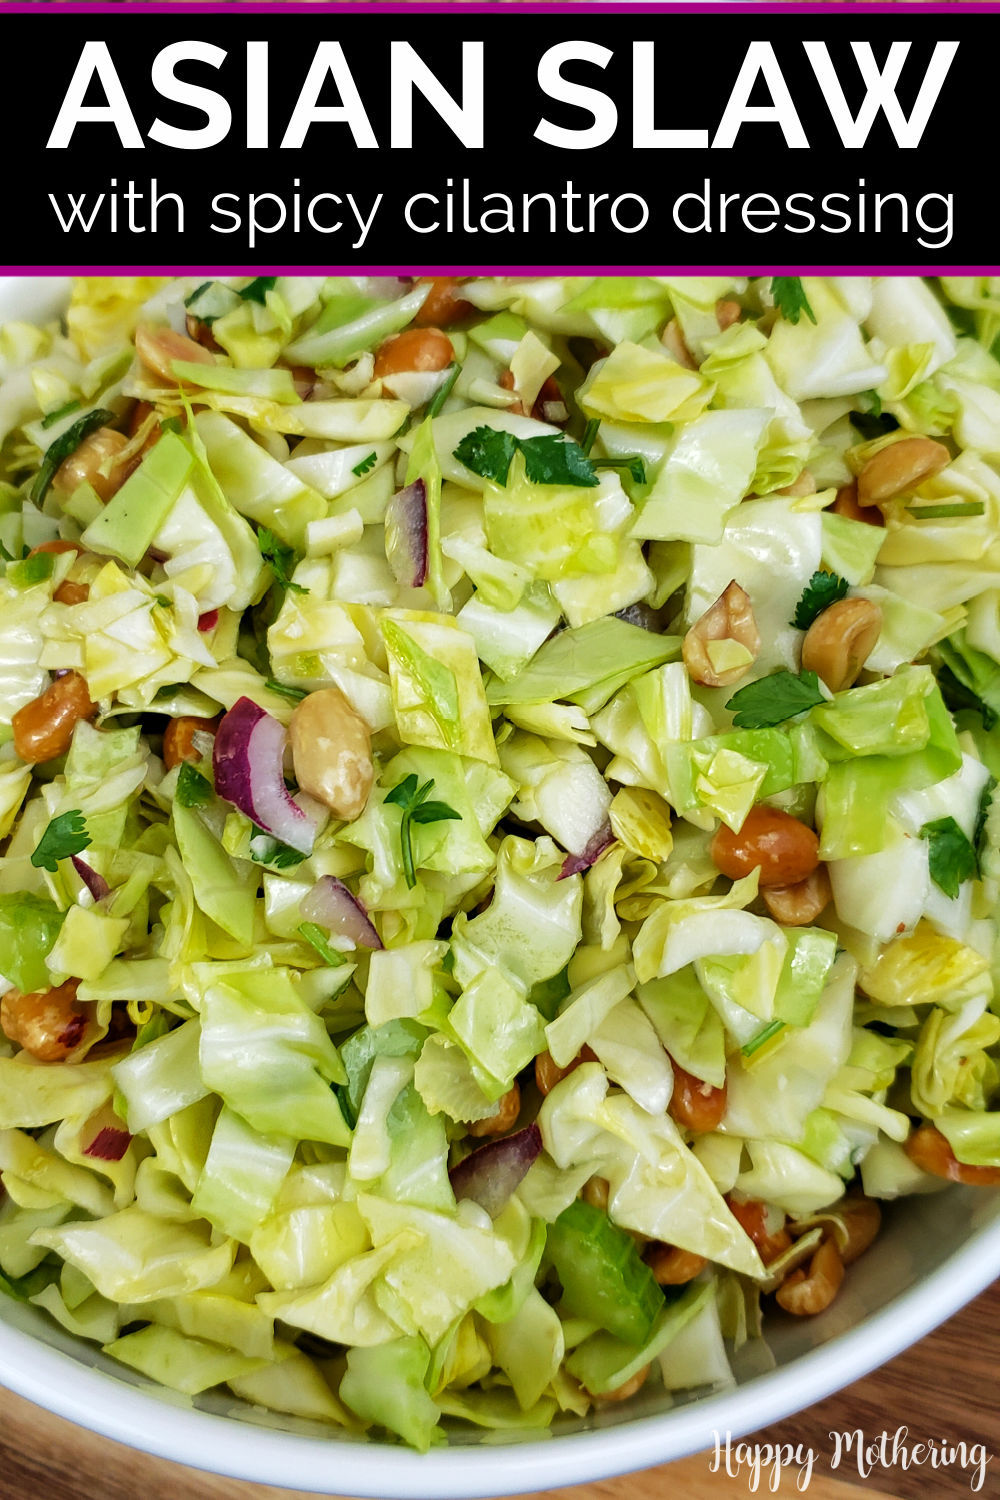 Asian Slaw tossed in spicy cilantro dressing in white serving bowl.